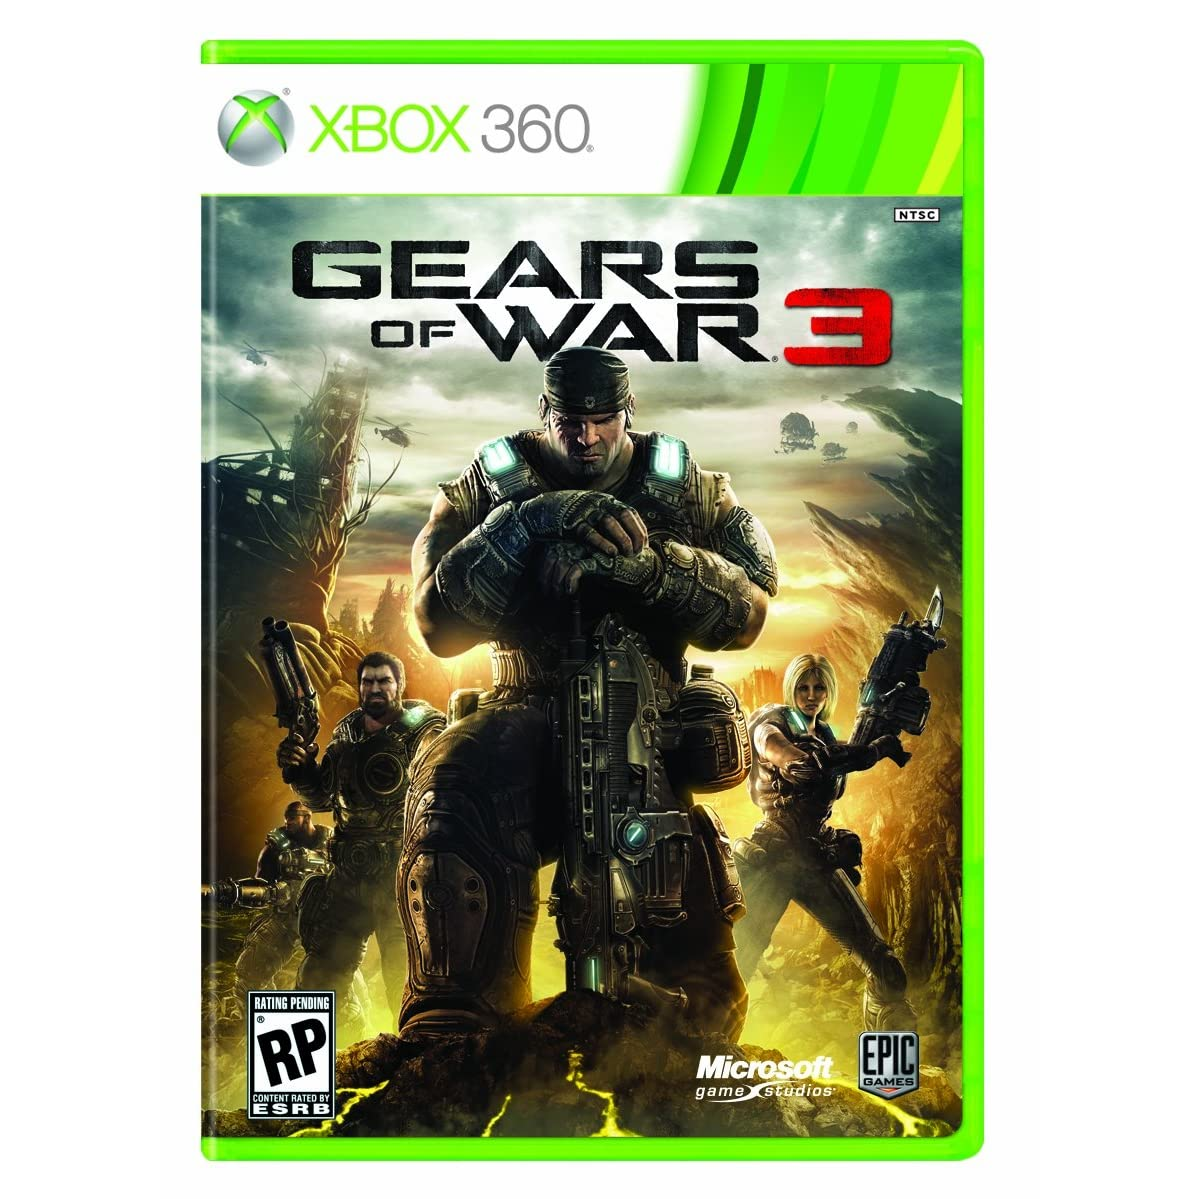 game, games, video game, video games, xbox, xbox360, x360